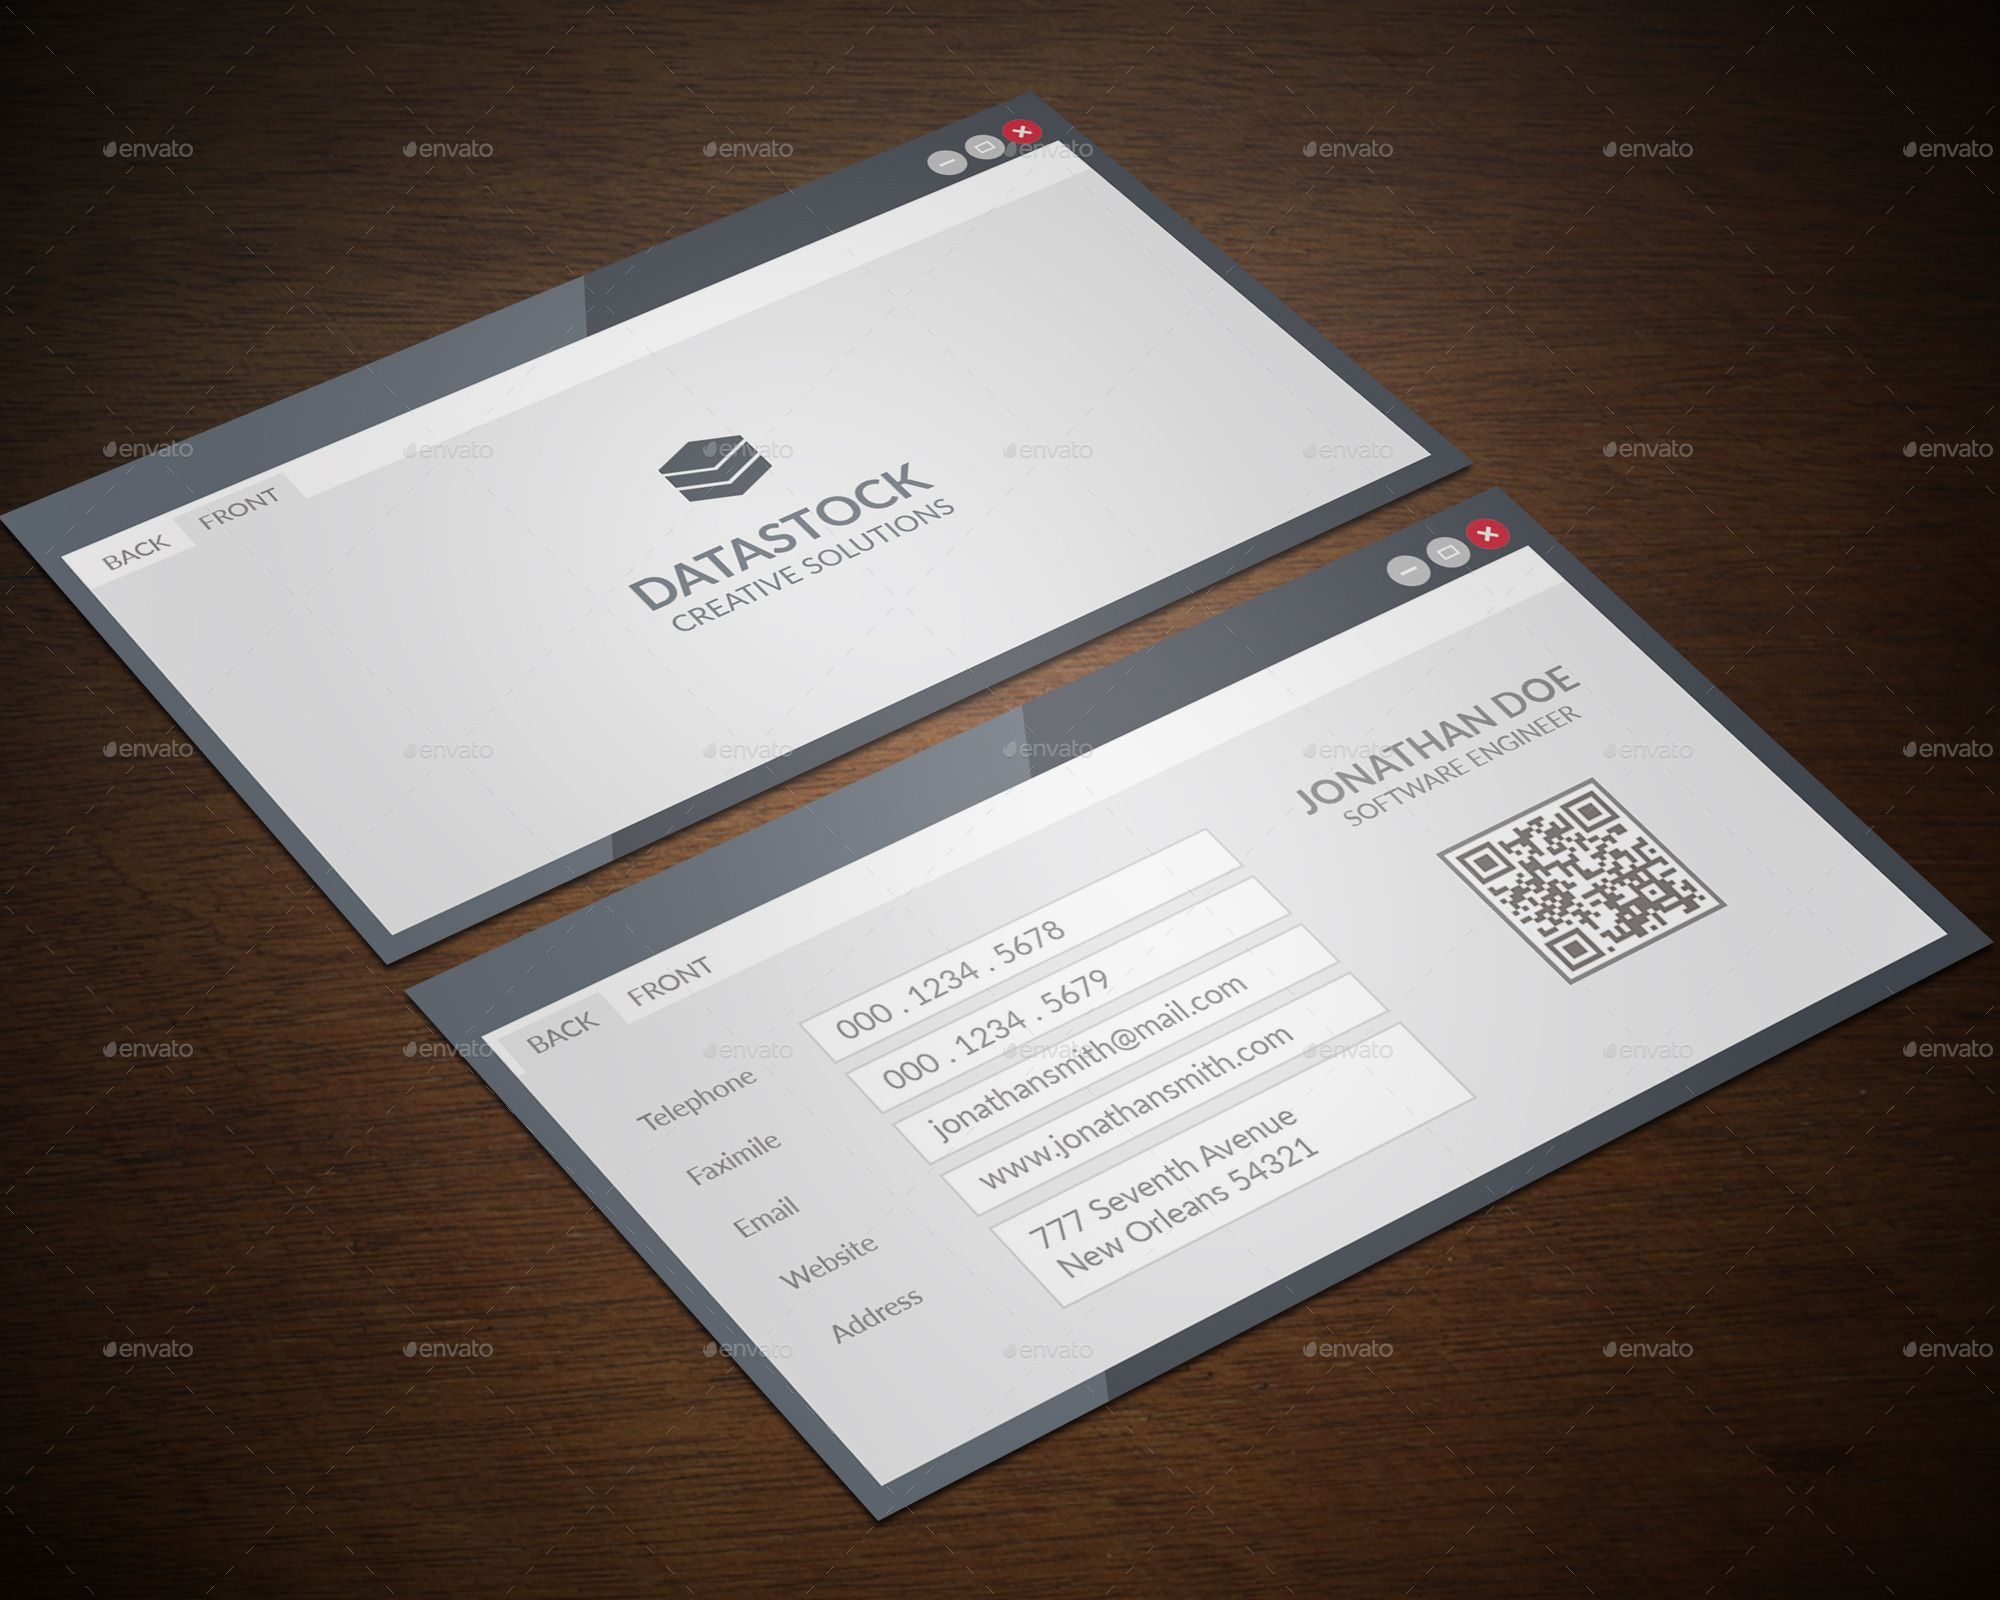 Software Engineer Business Card | Business cards, Software and Business